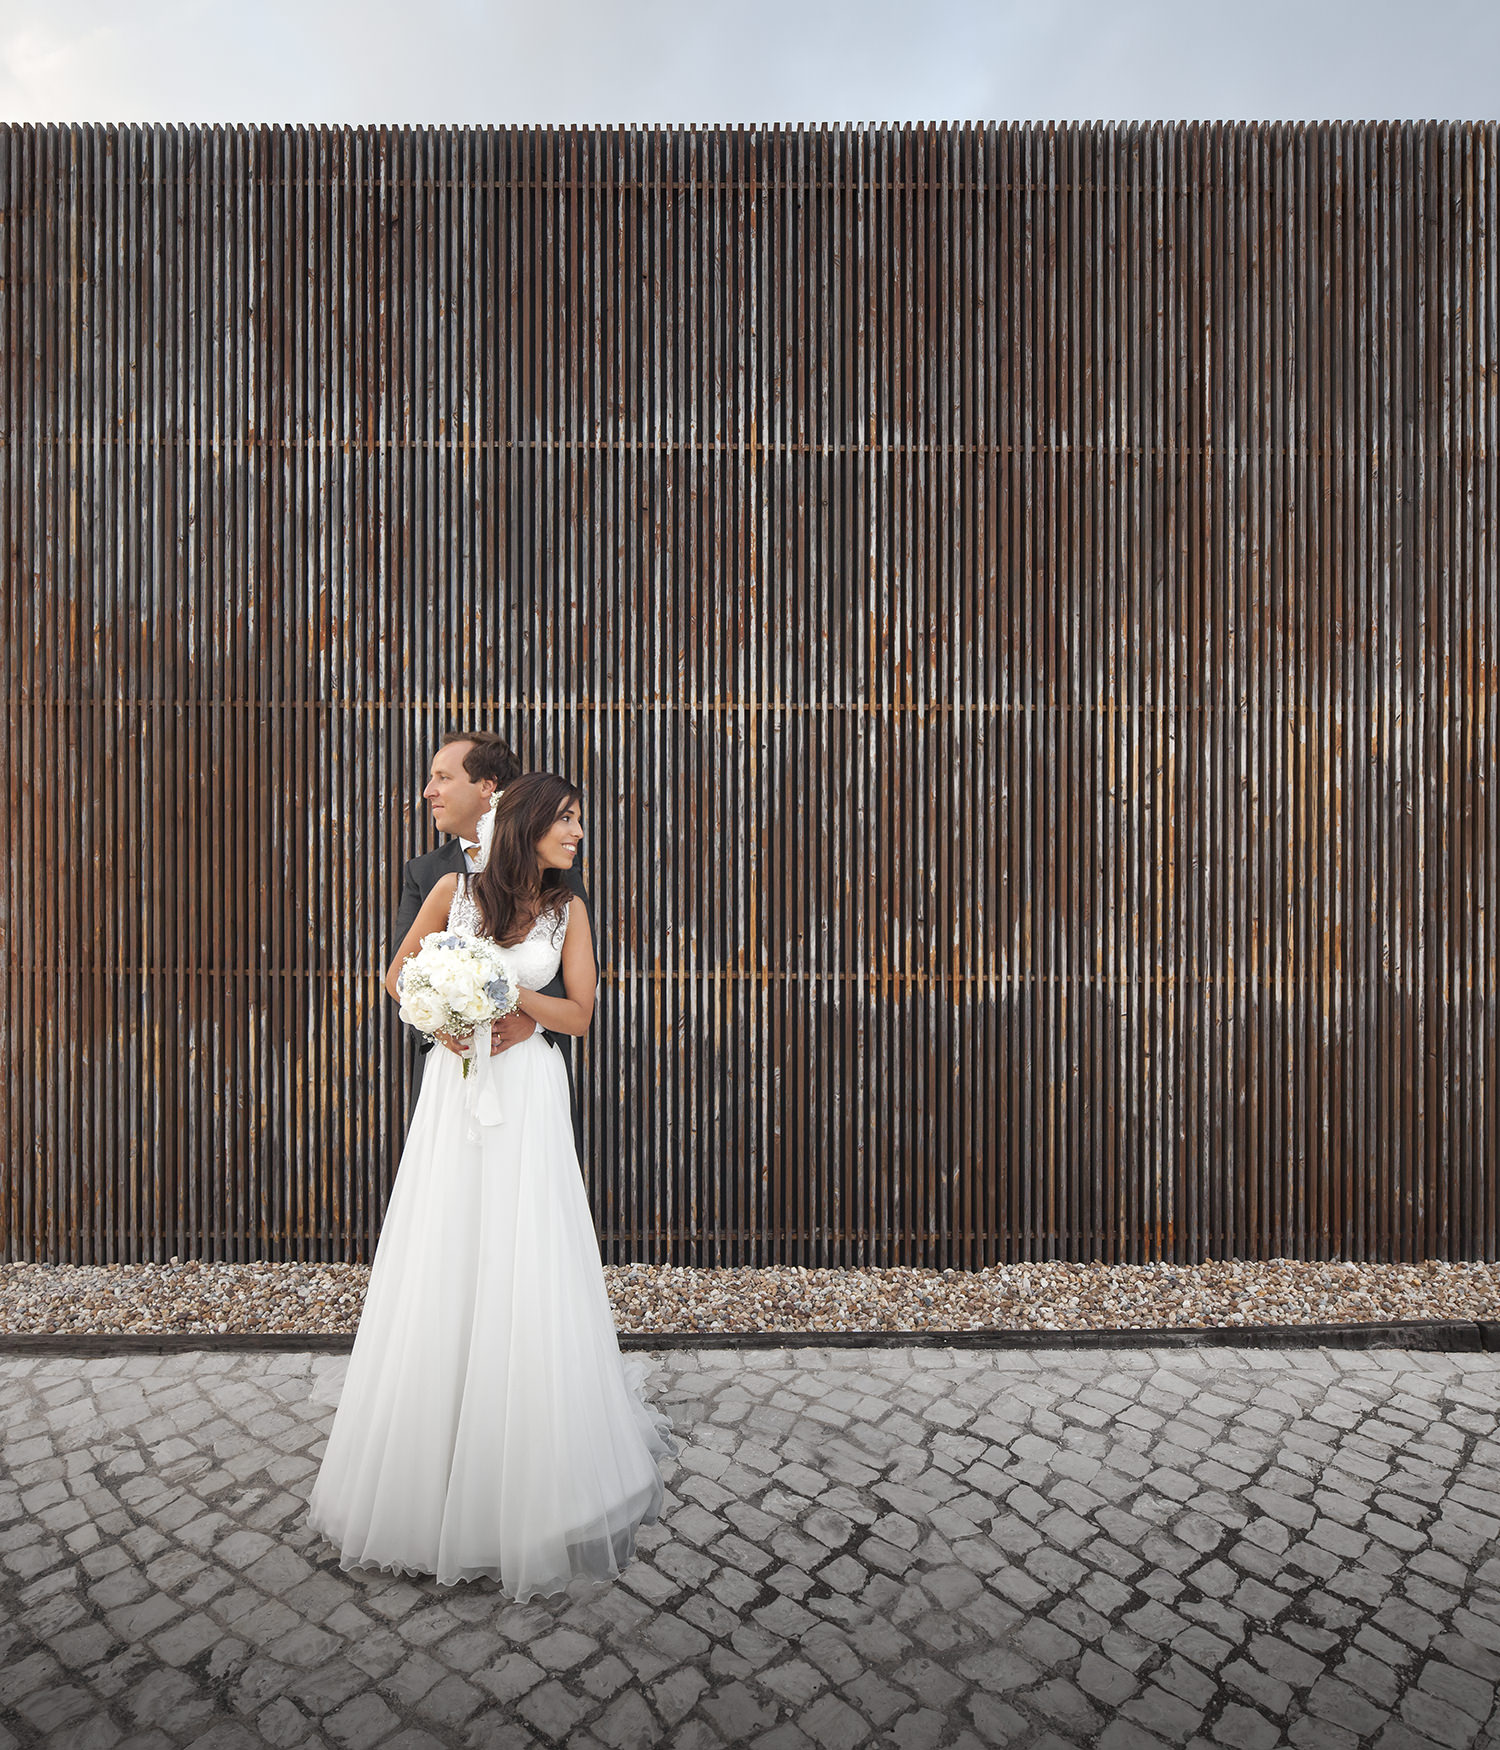 areias-seixo-wedding-photographer-terra-fotografia-151.jpg